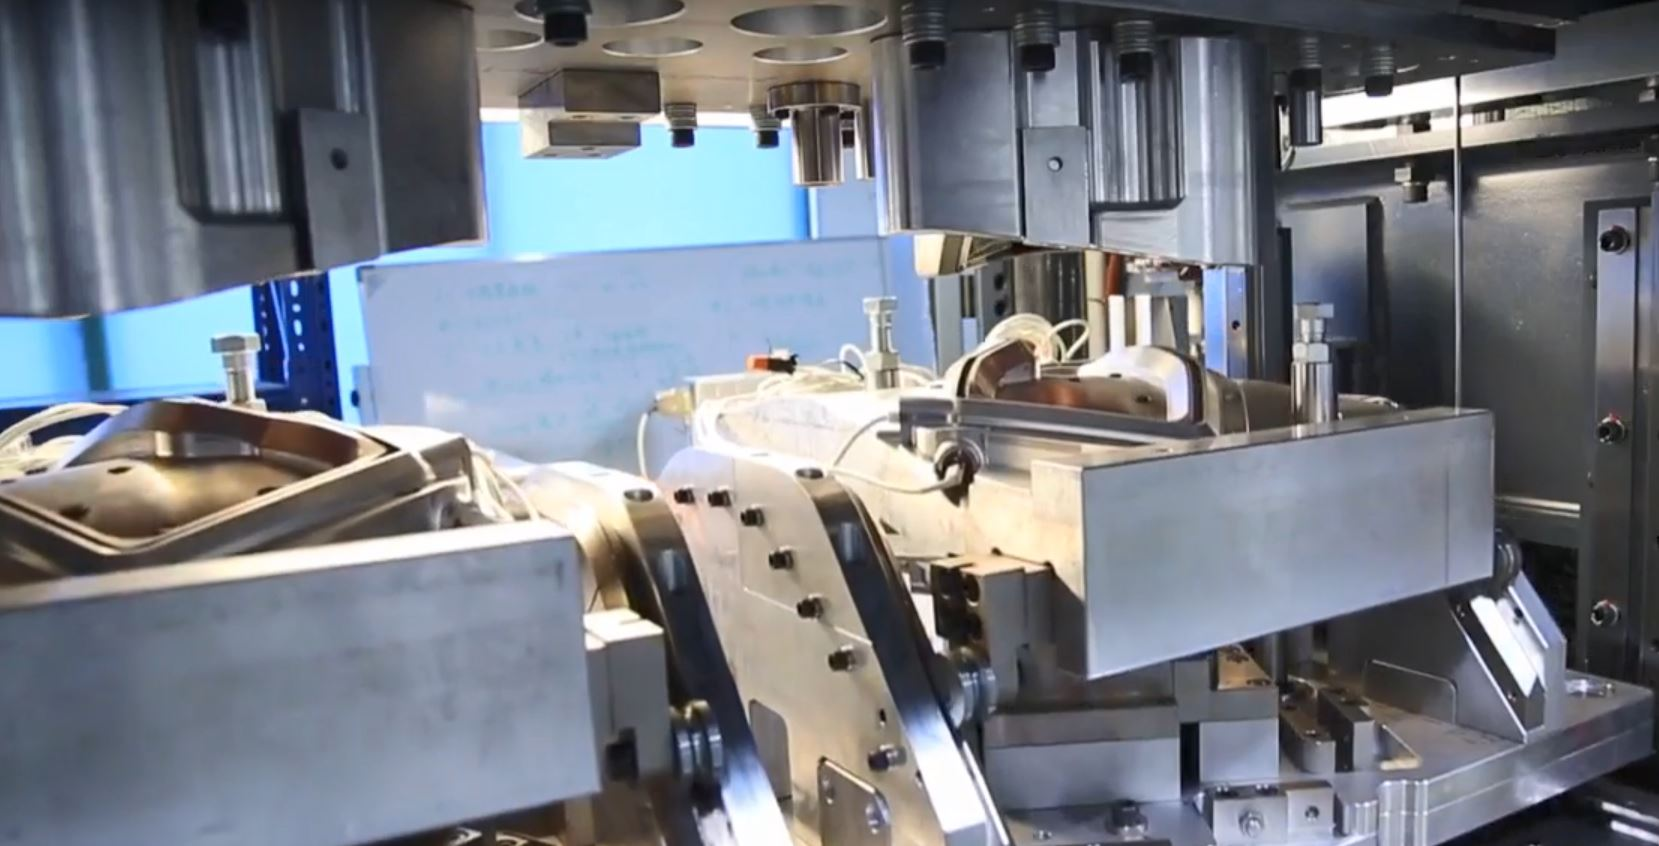 Vibration Welding with Infrared Preheat Technology